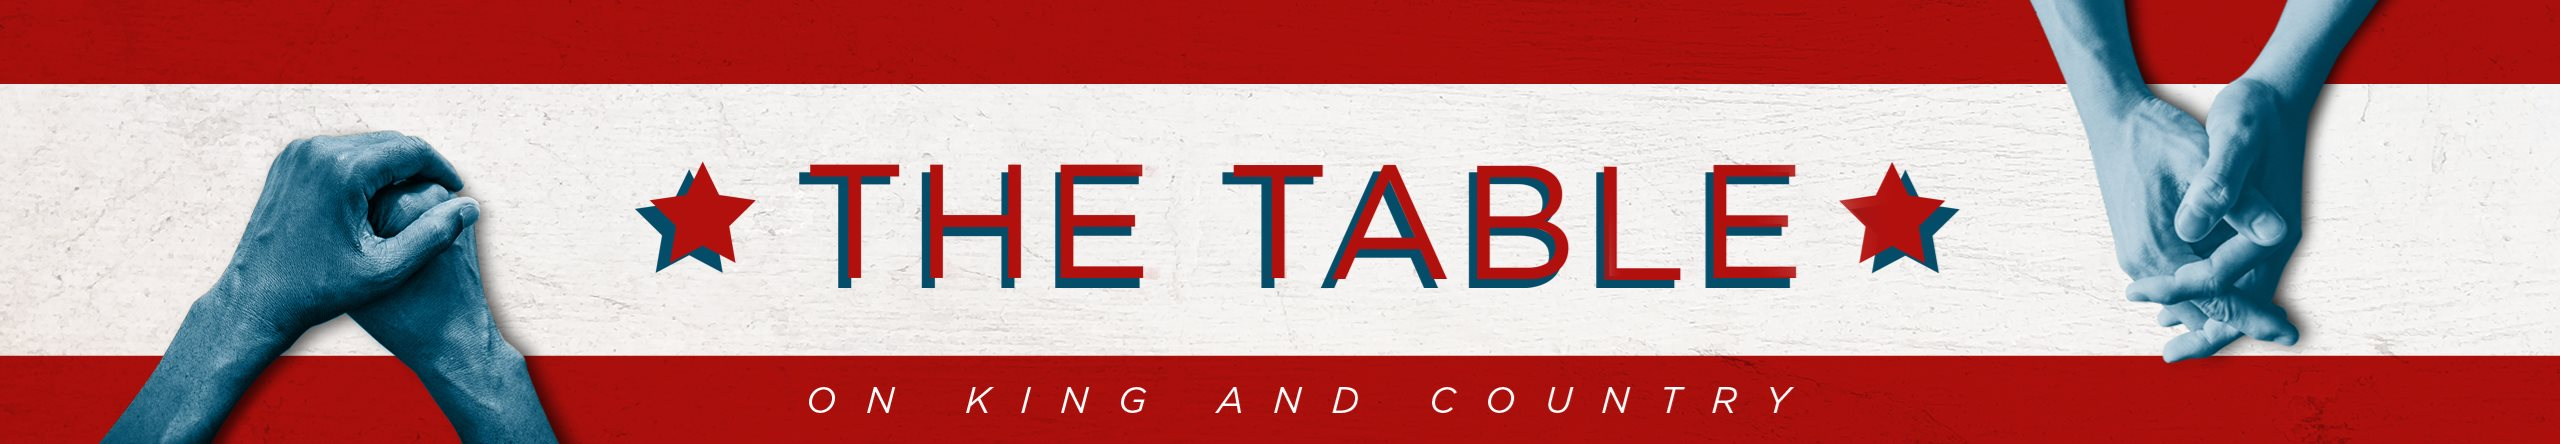 The Table: On King and Country